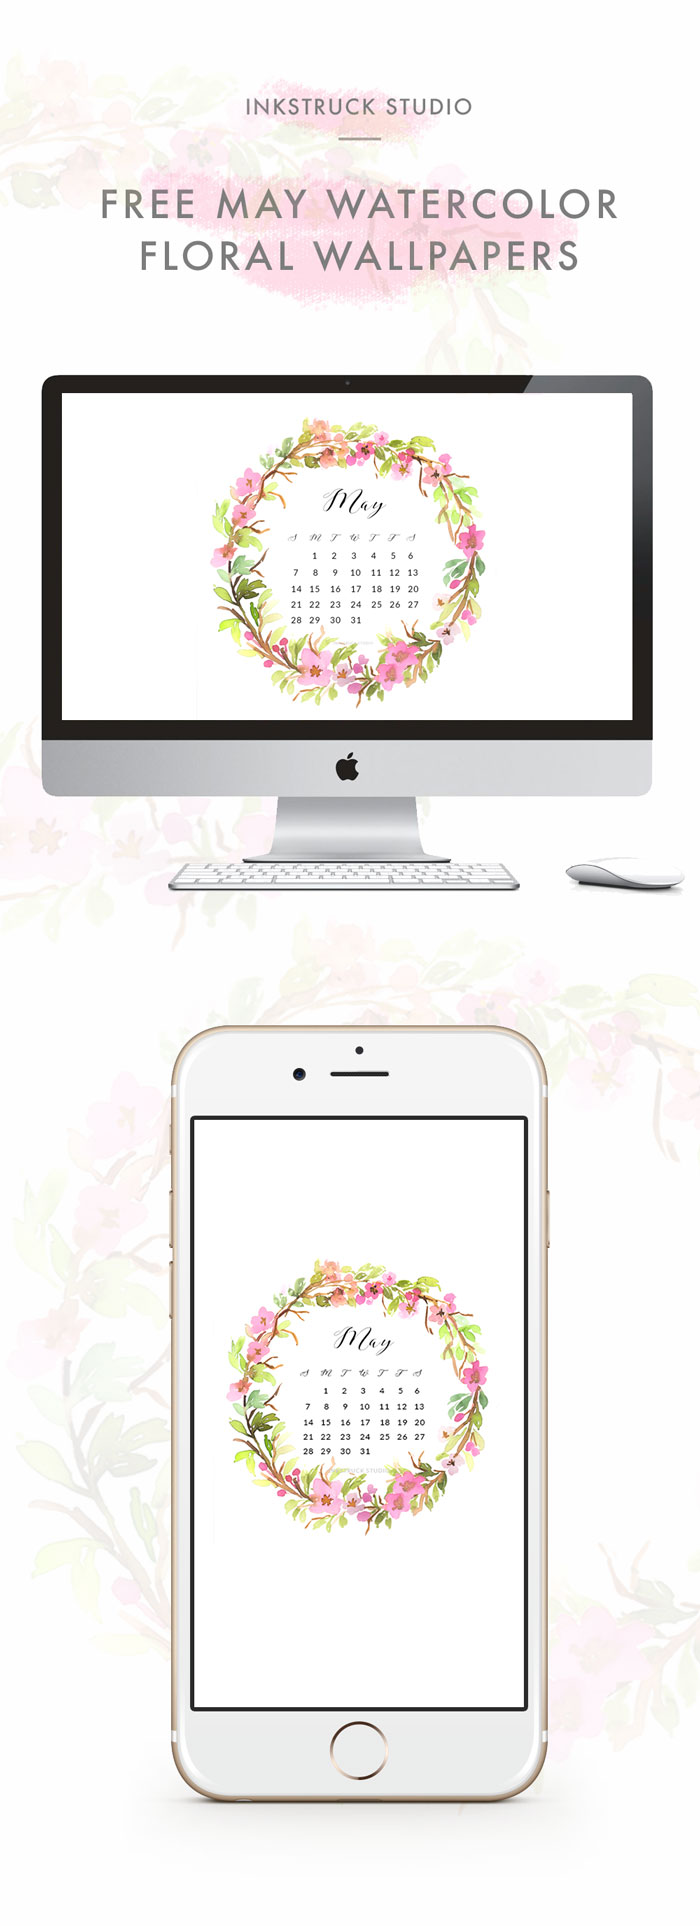 It's May! Time to change your wallpaper.Download this beautiful May watercolor wallpaper for desktops and phones - Inkstruck Studio